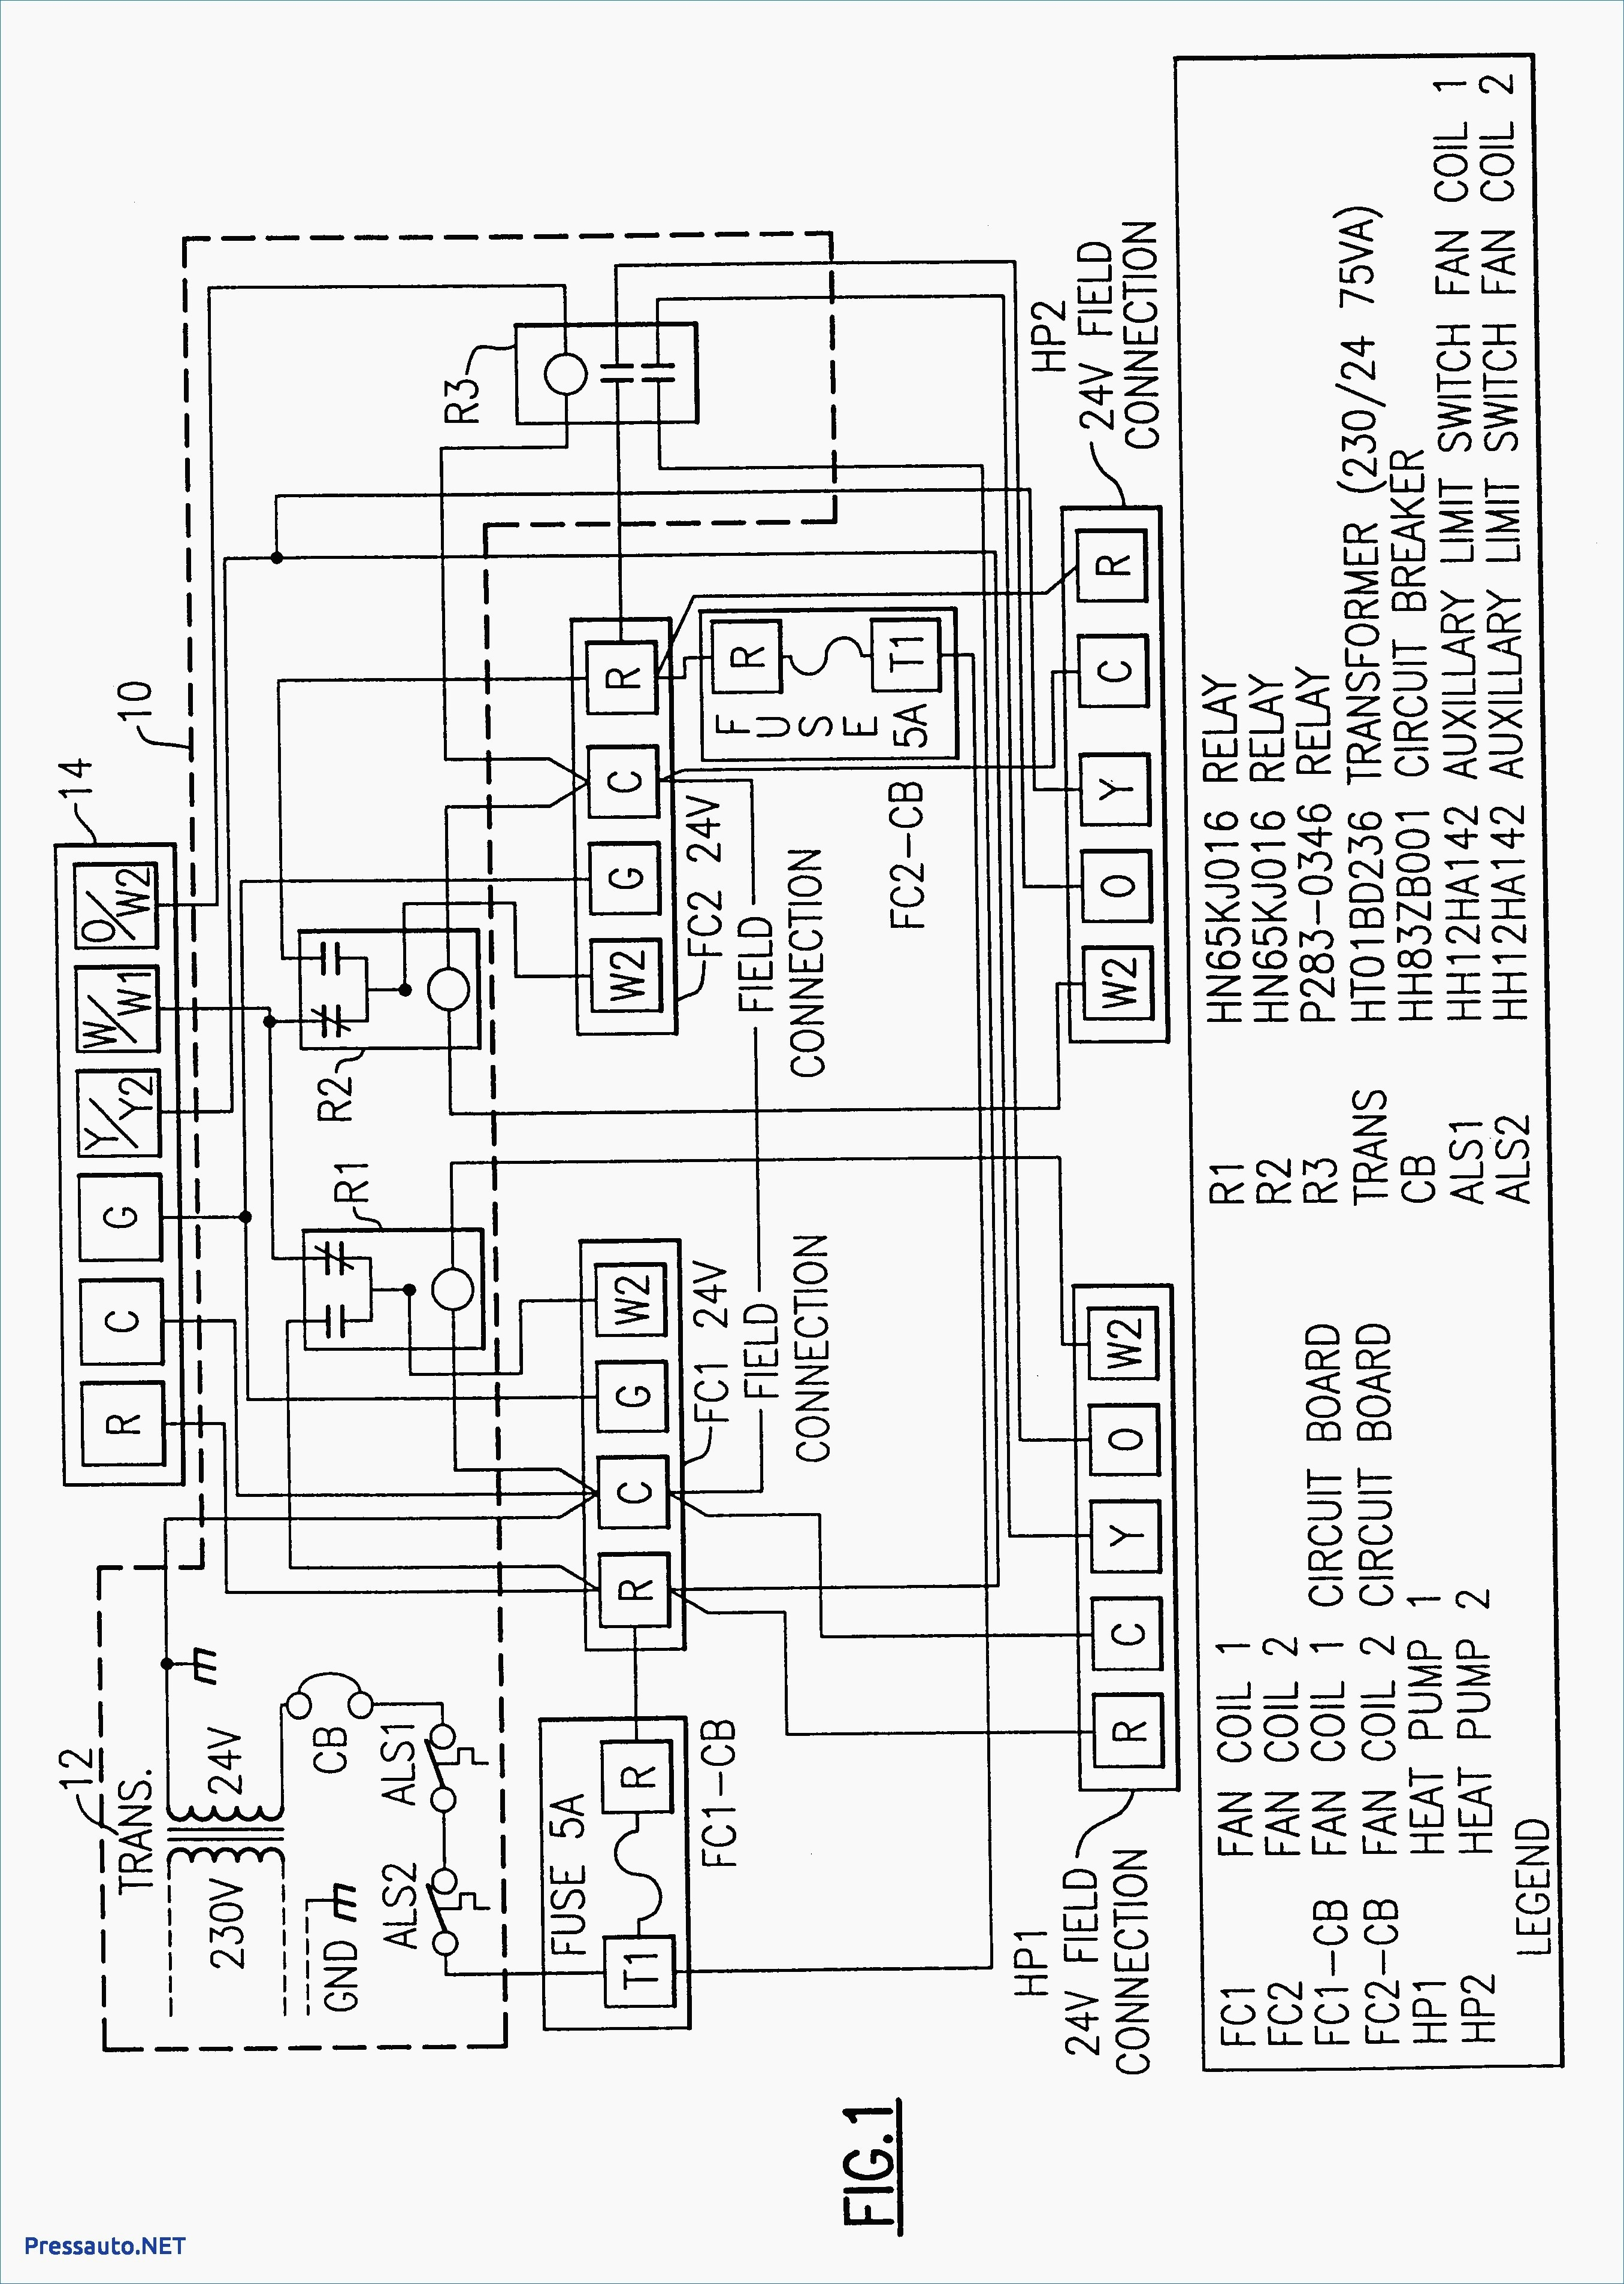 York Motor Wiring Diagram